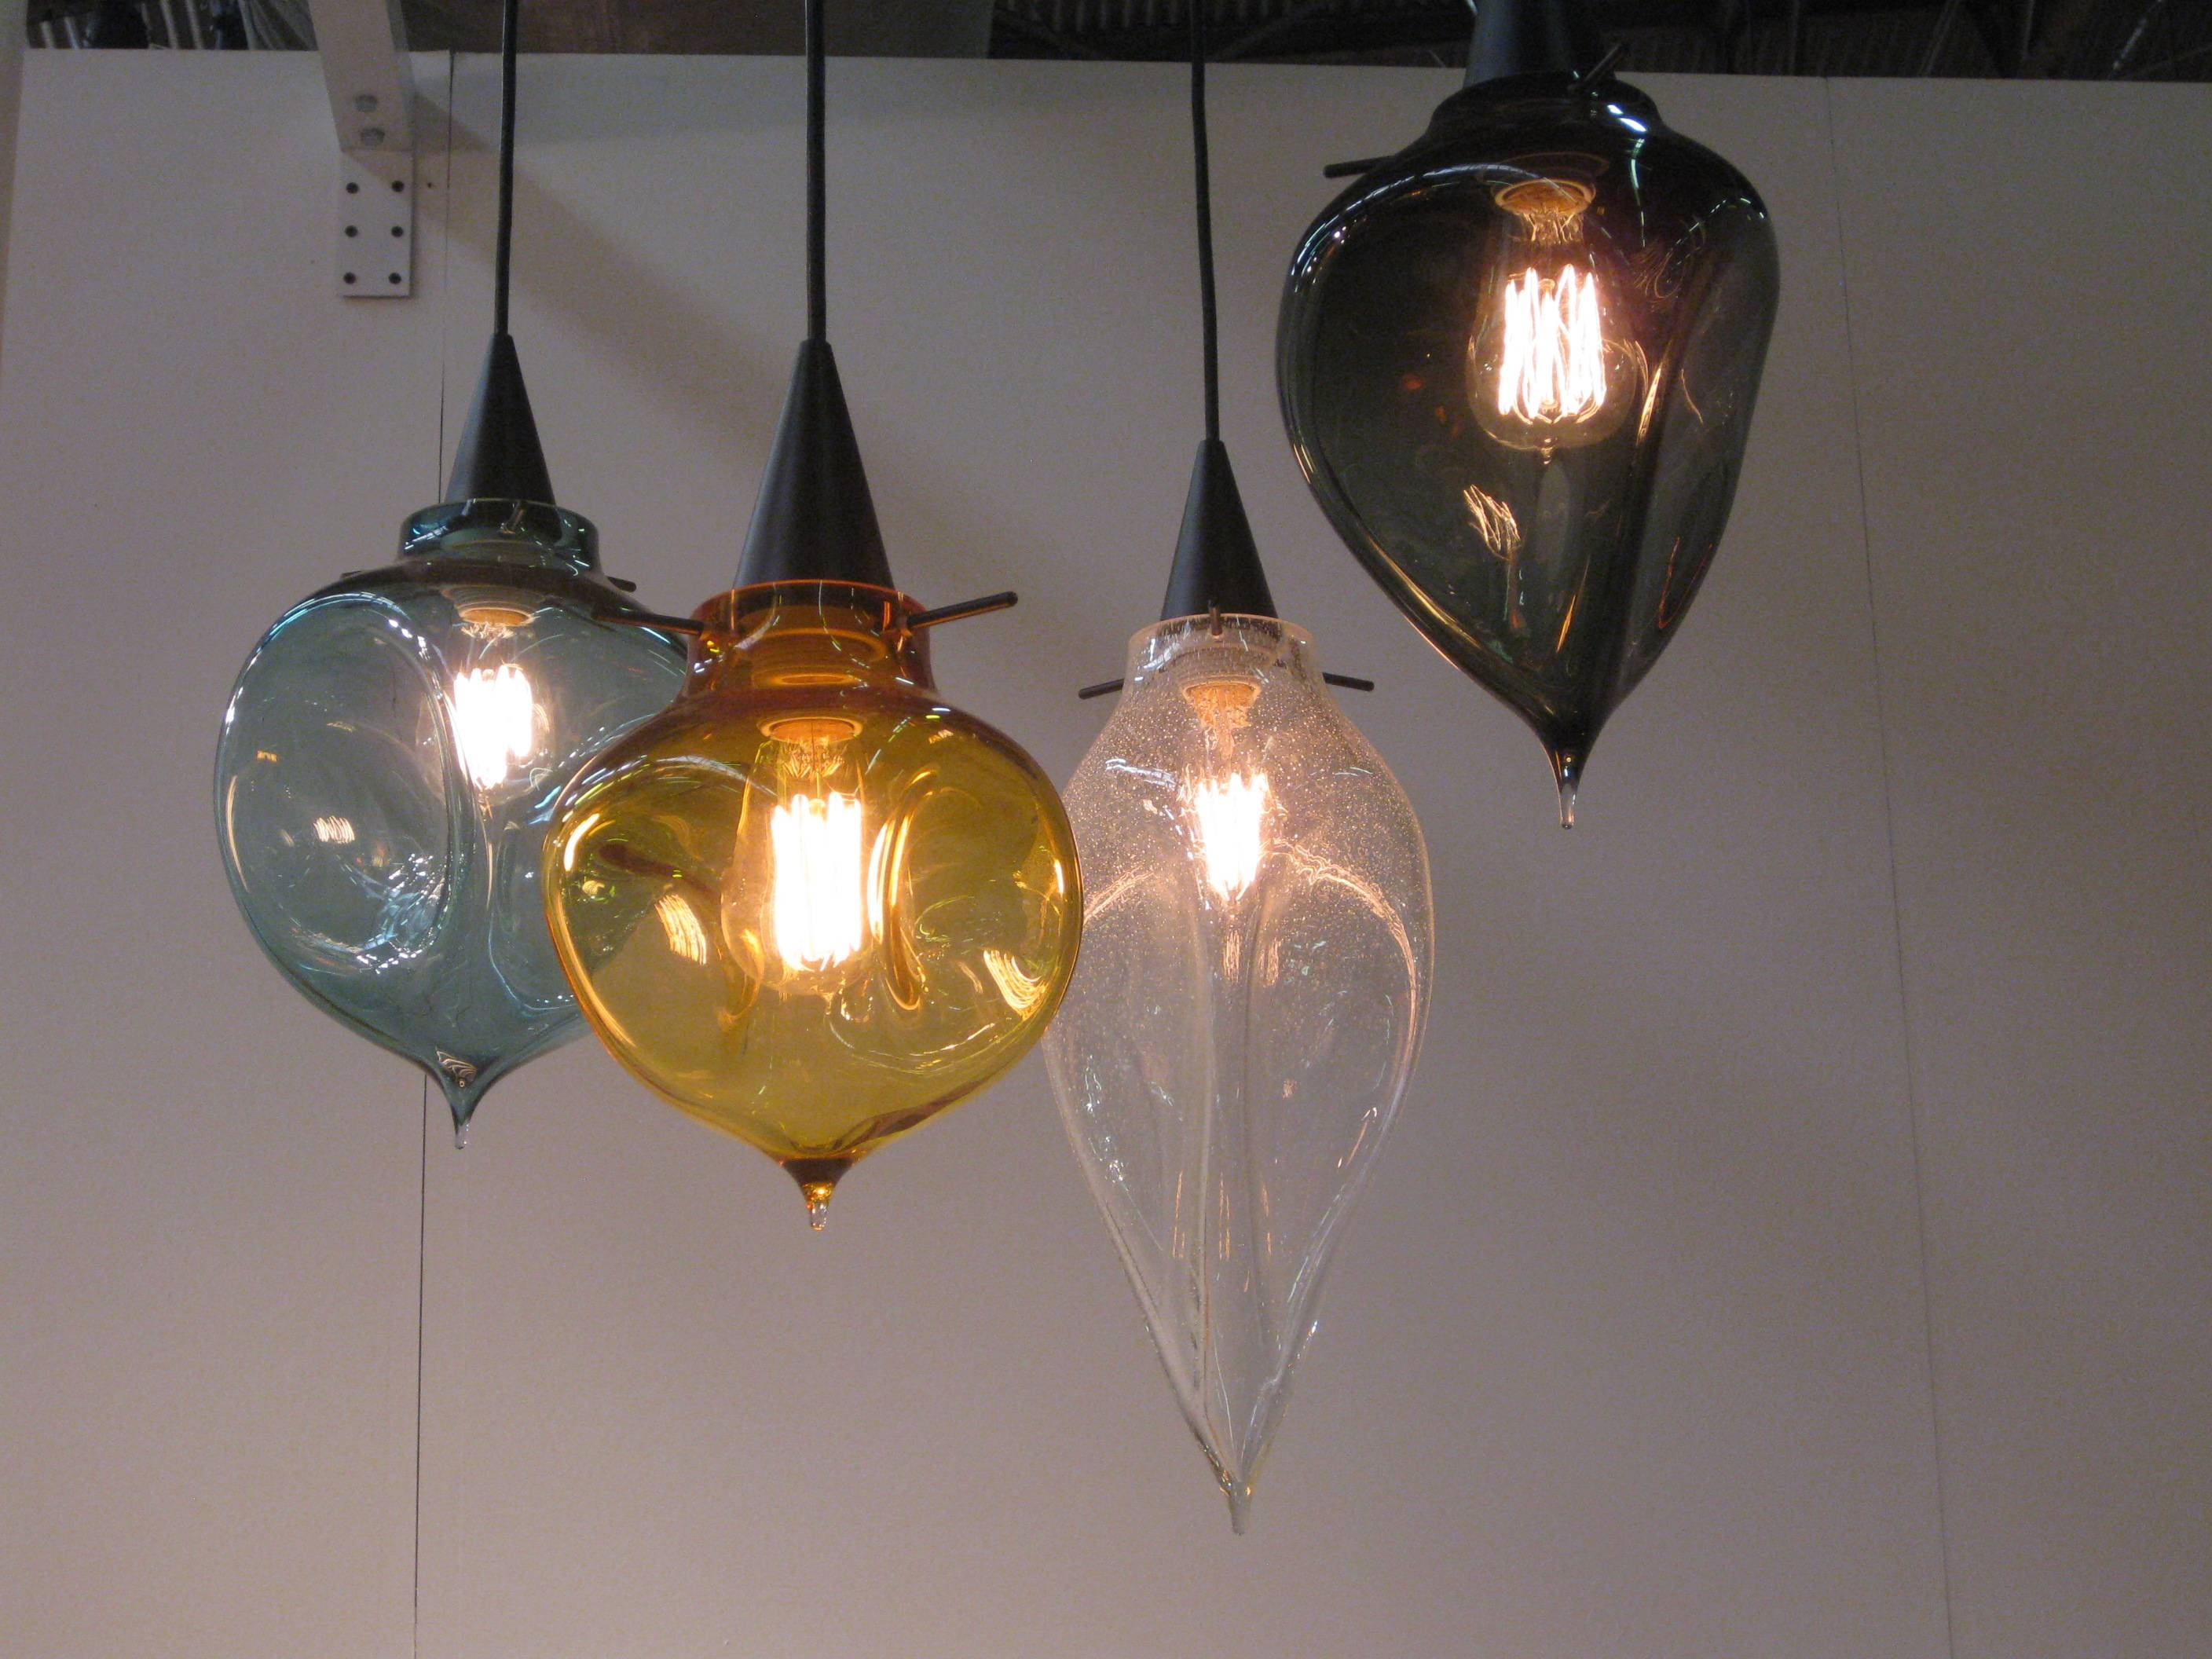 Ceiling Lights : Terrific Hand Blown Art Glass Lighting inside Hand Blown Glass Lights Fixtures (Image 7 of 15)